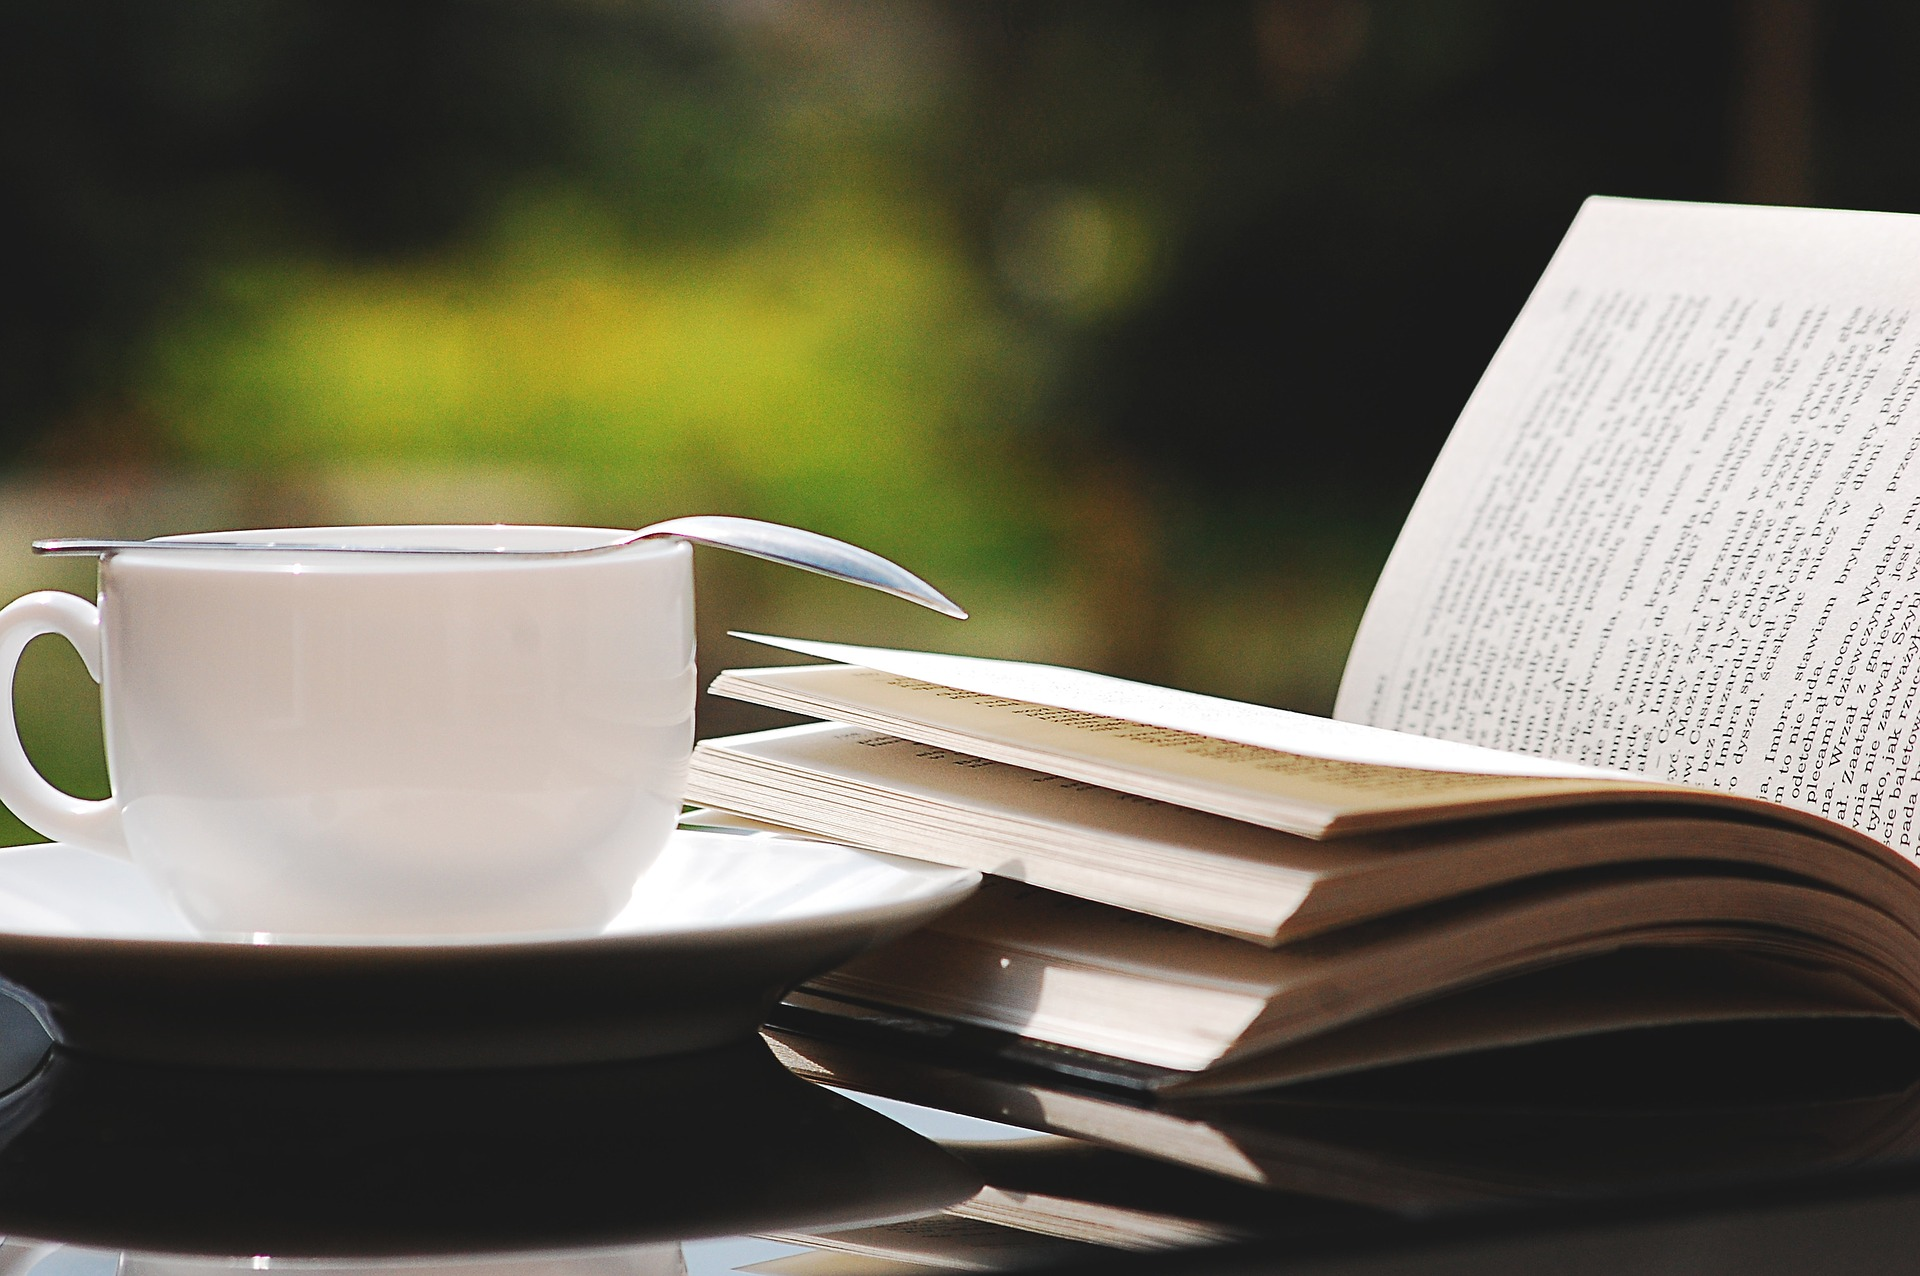 summer writing retreat with book and coffee